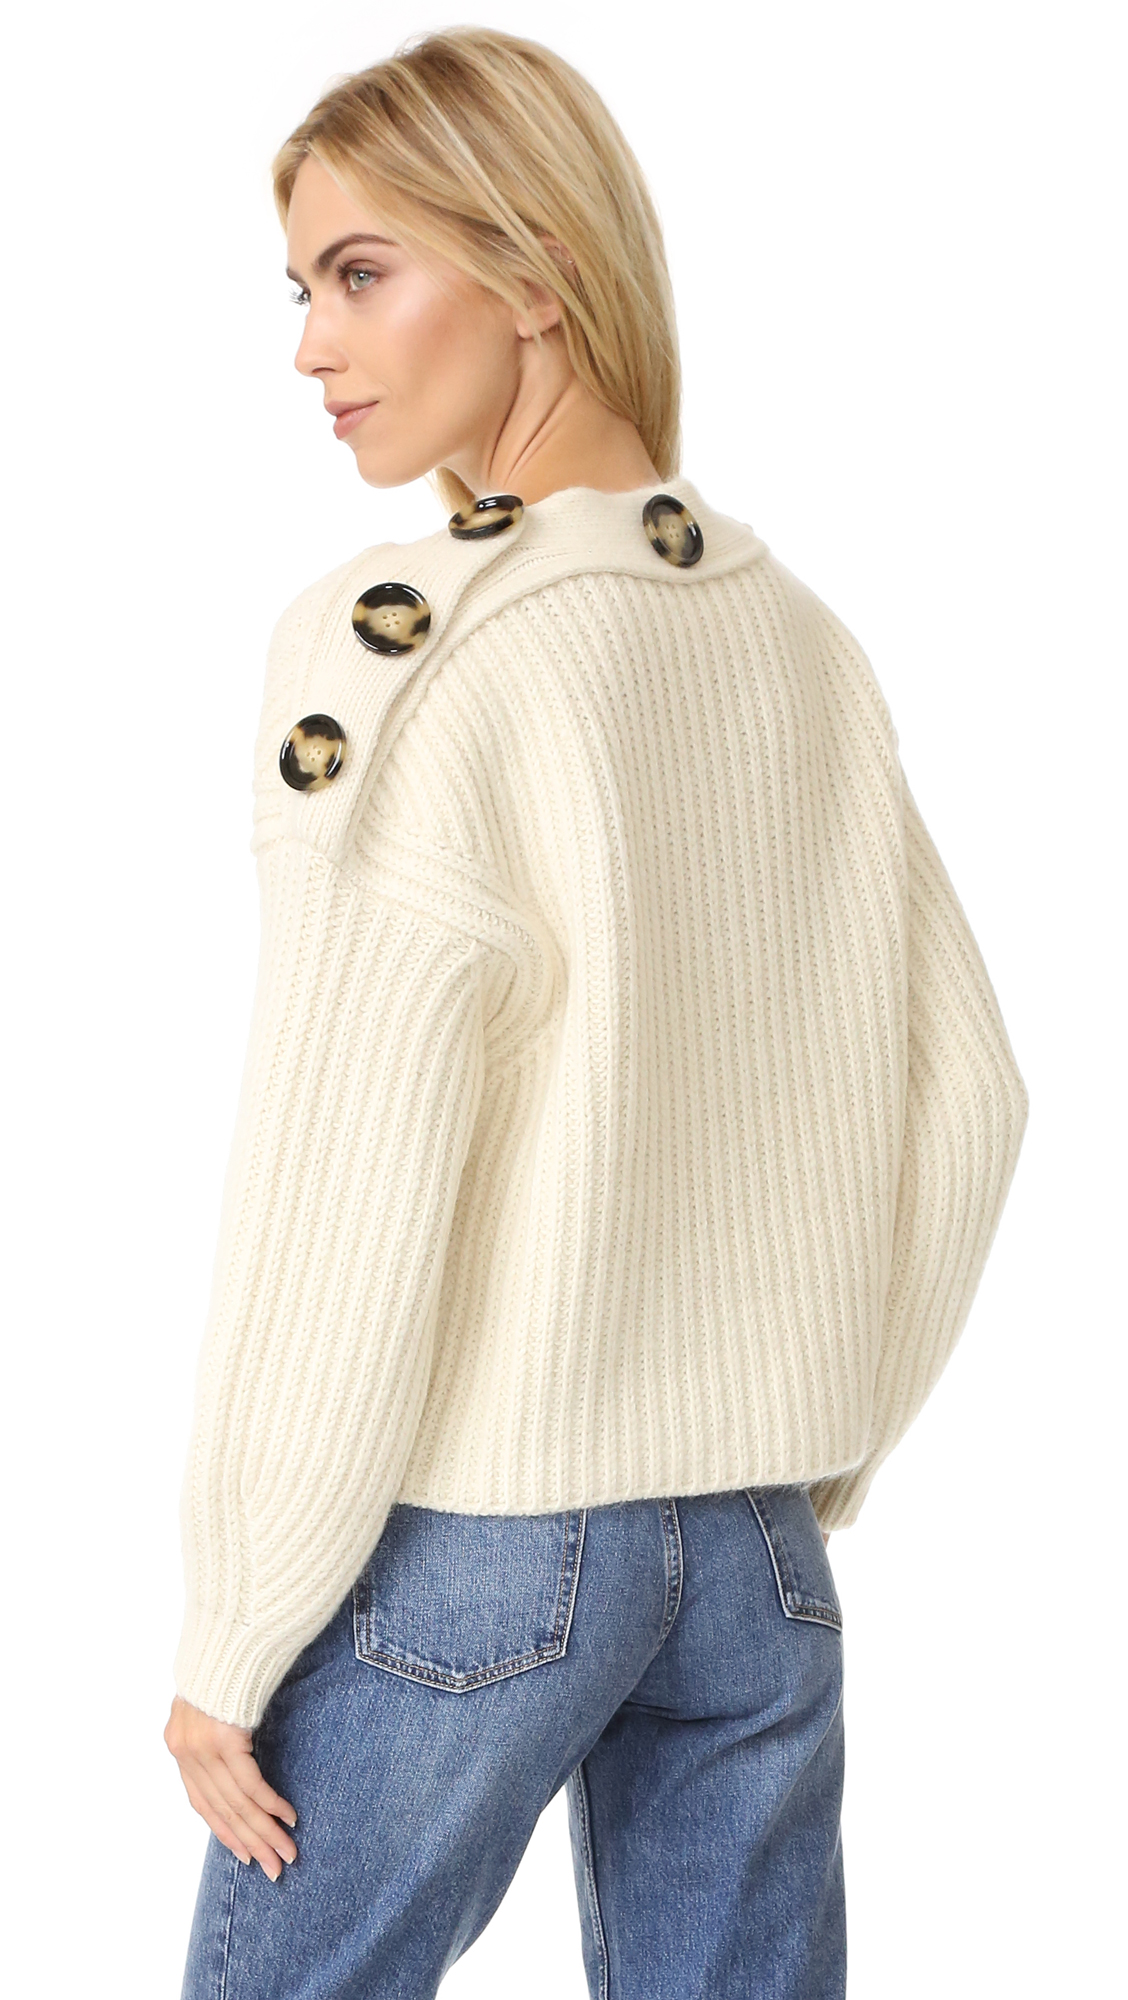 Oversized buttons add unique asymmetry to this boxy Acne Studios sweater. 3/4 sleeves with ribbed cuffs. Fabric: Brushed, chunky knit. 85% wool/10% mohair/5% nylon. Hand wash or dry clean. Made in Italy. Measurements Length: 22.75in / 58cm, from shoulder